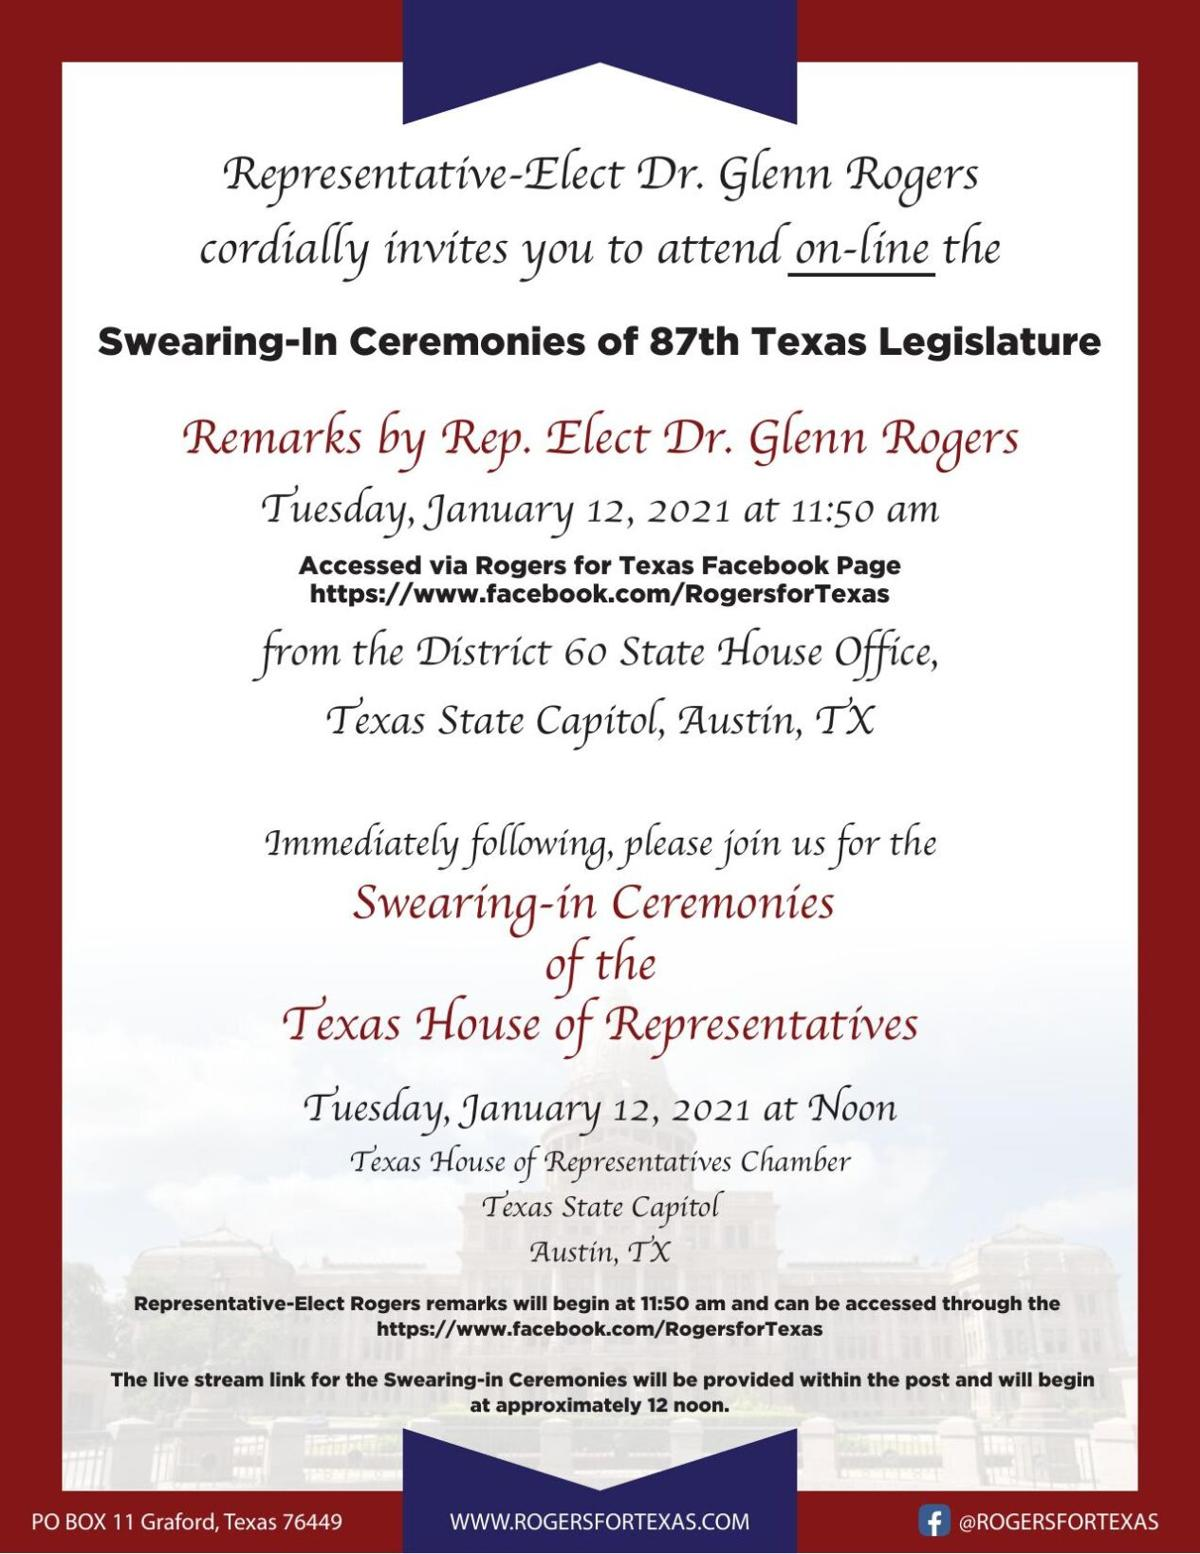 Invite to View Swearing-In of Dr. Glenn Rogers